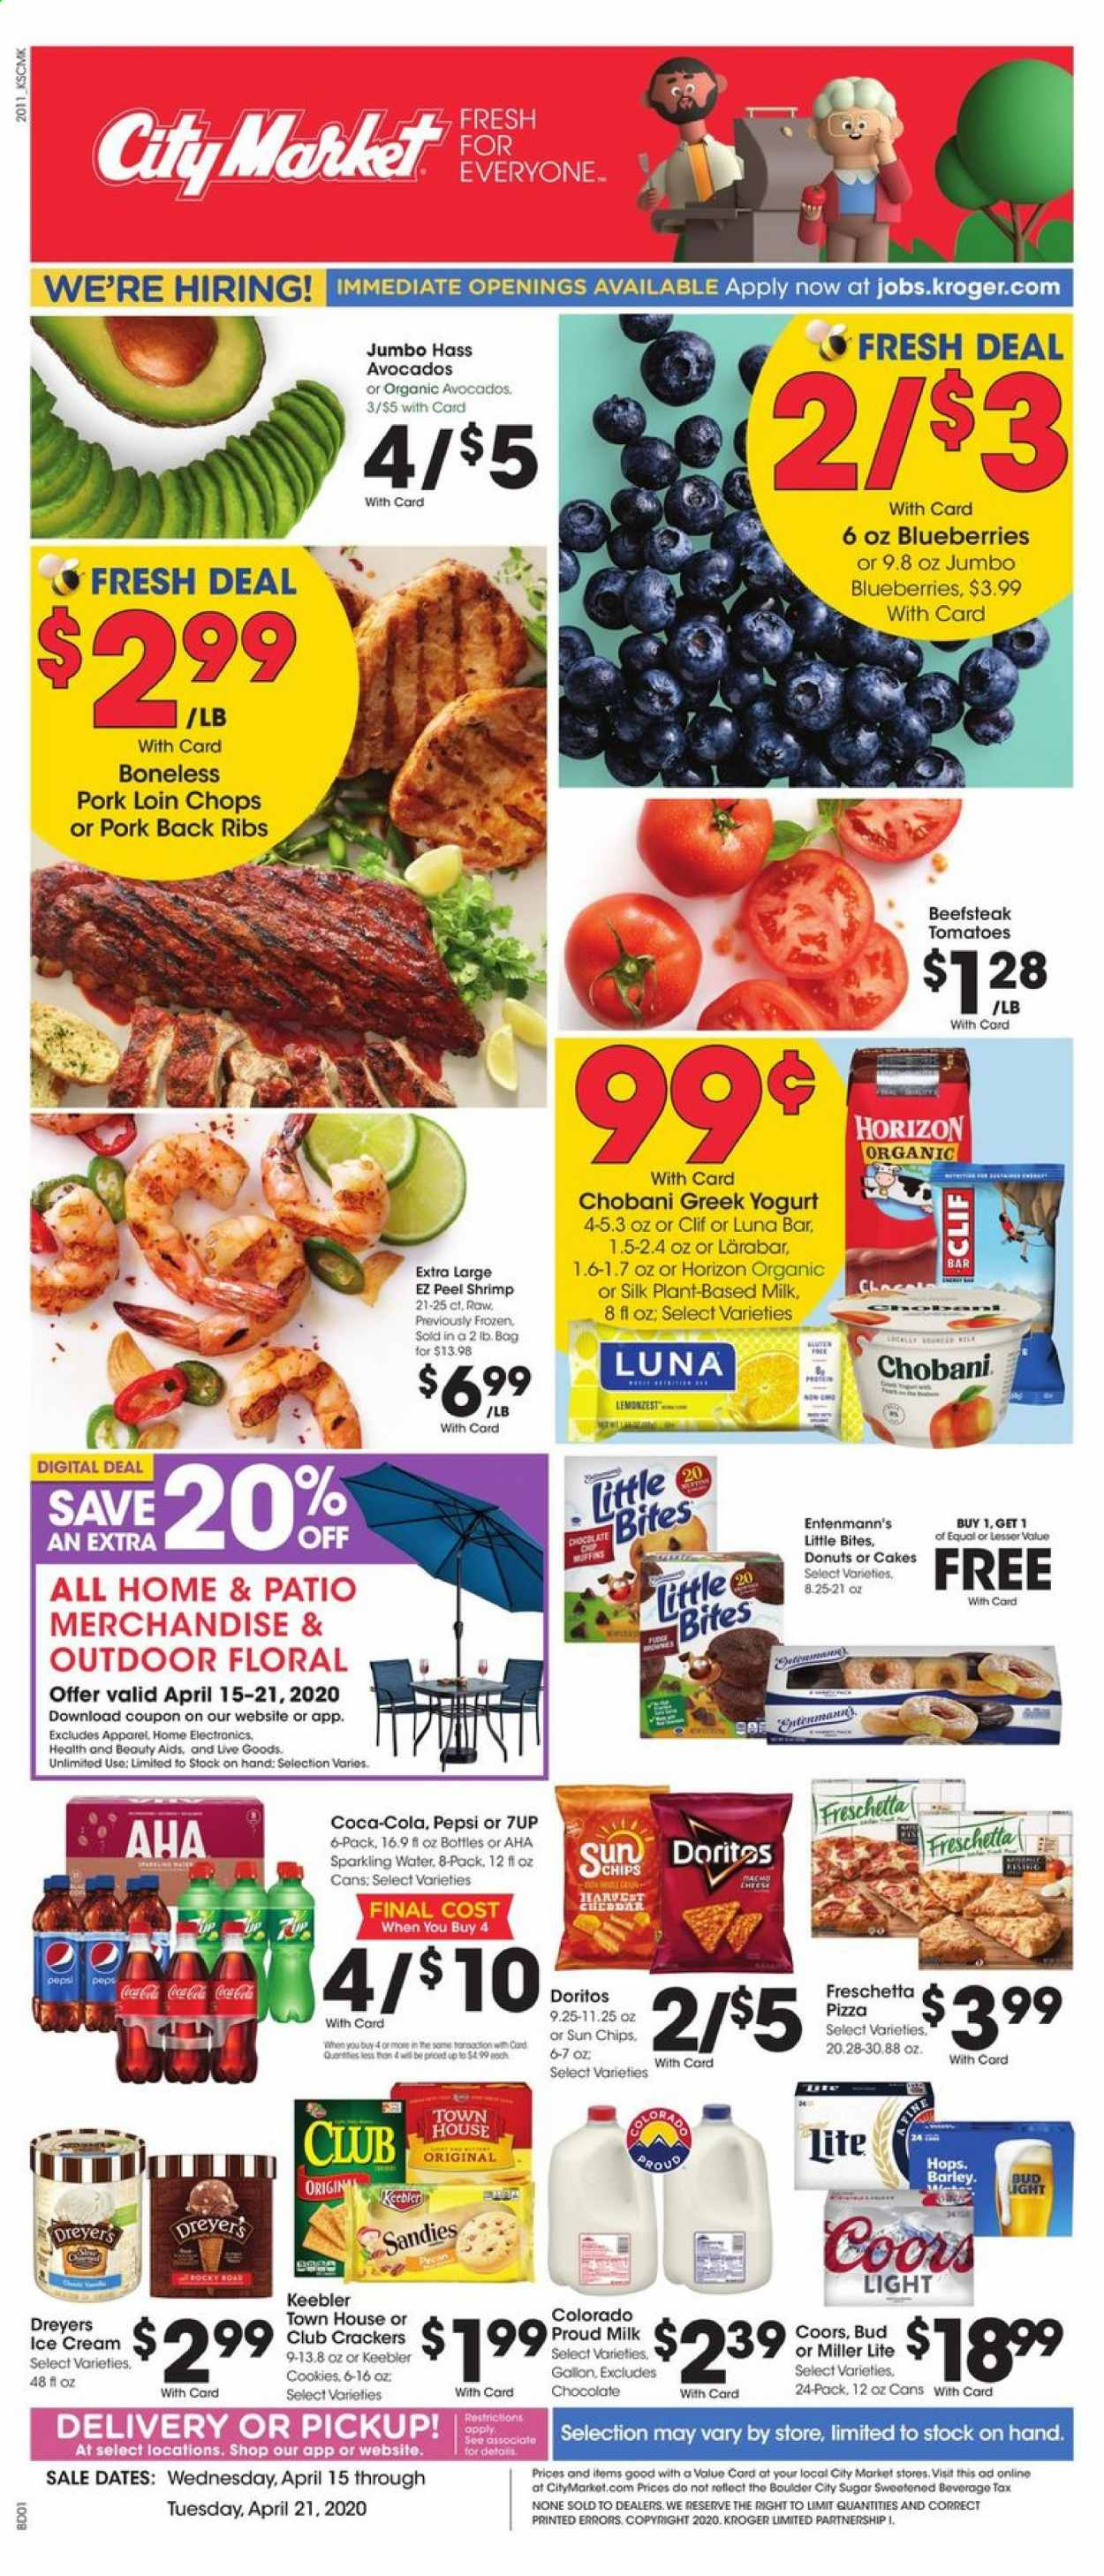 City Market Flyer  - 04.15.2020 - 04.21.2020. Page 1.